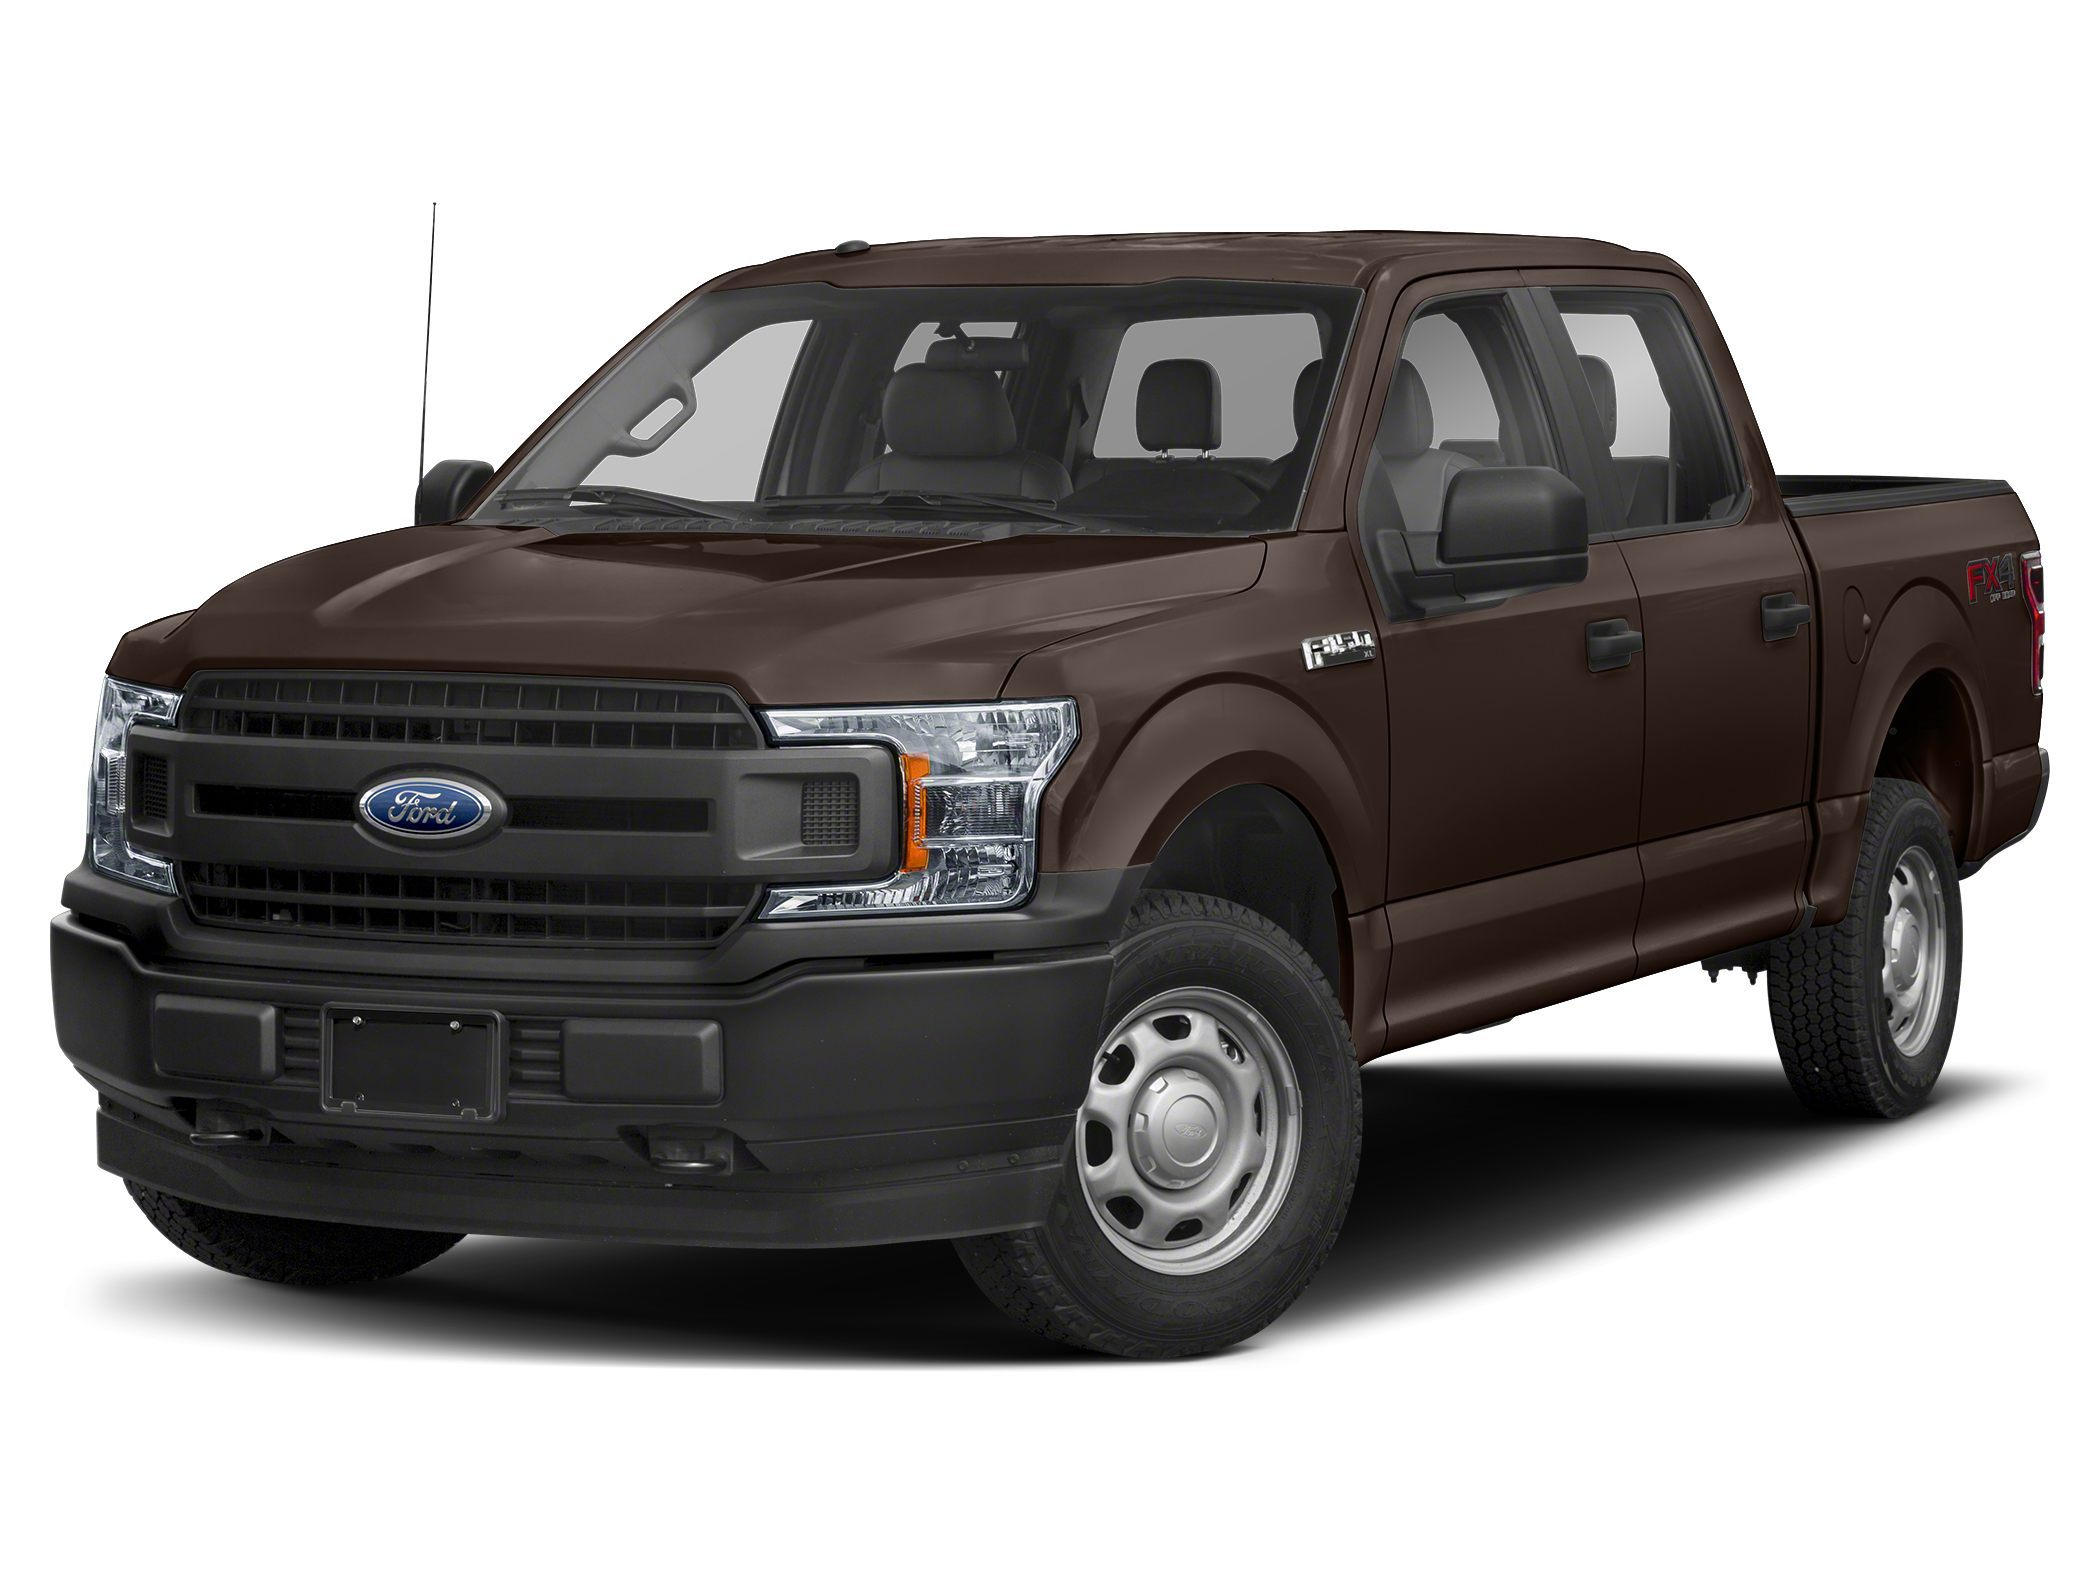 Used 2020 Ford F-150 XLT with VIN 1FTFW1E48LFC41963 for sale in Branch, Minnesota